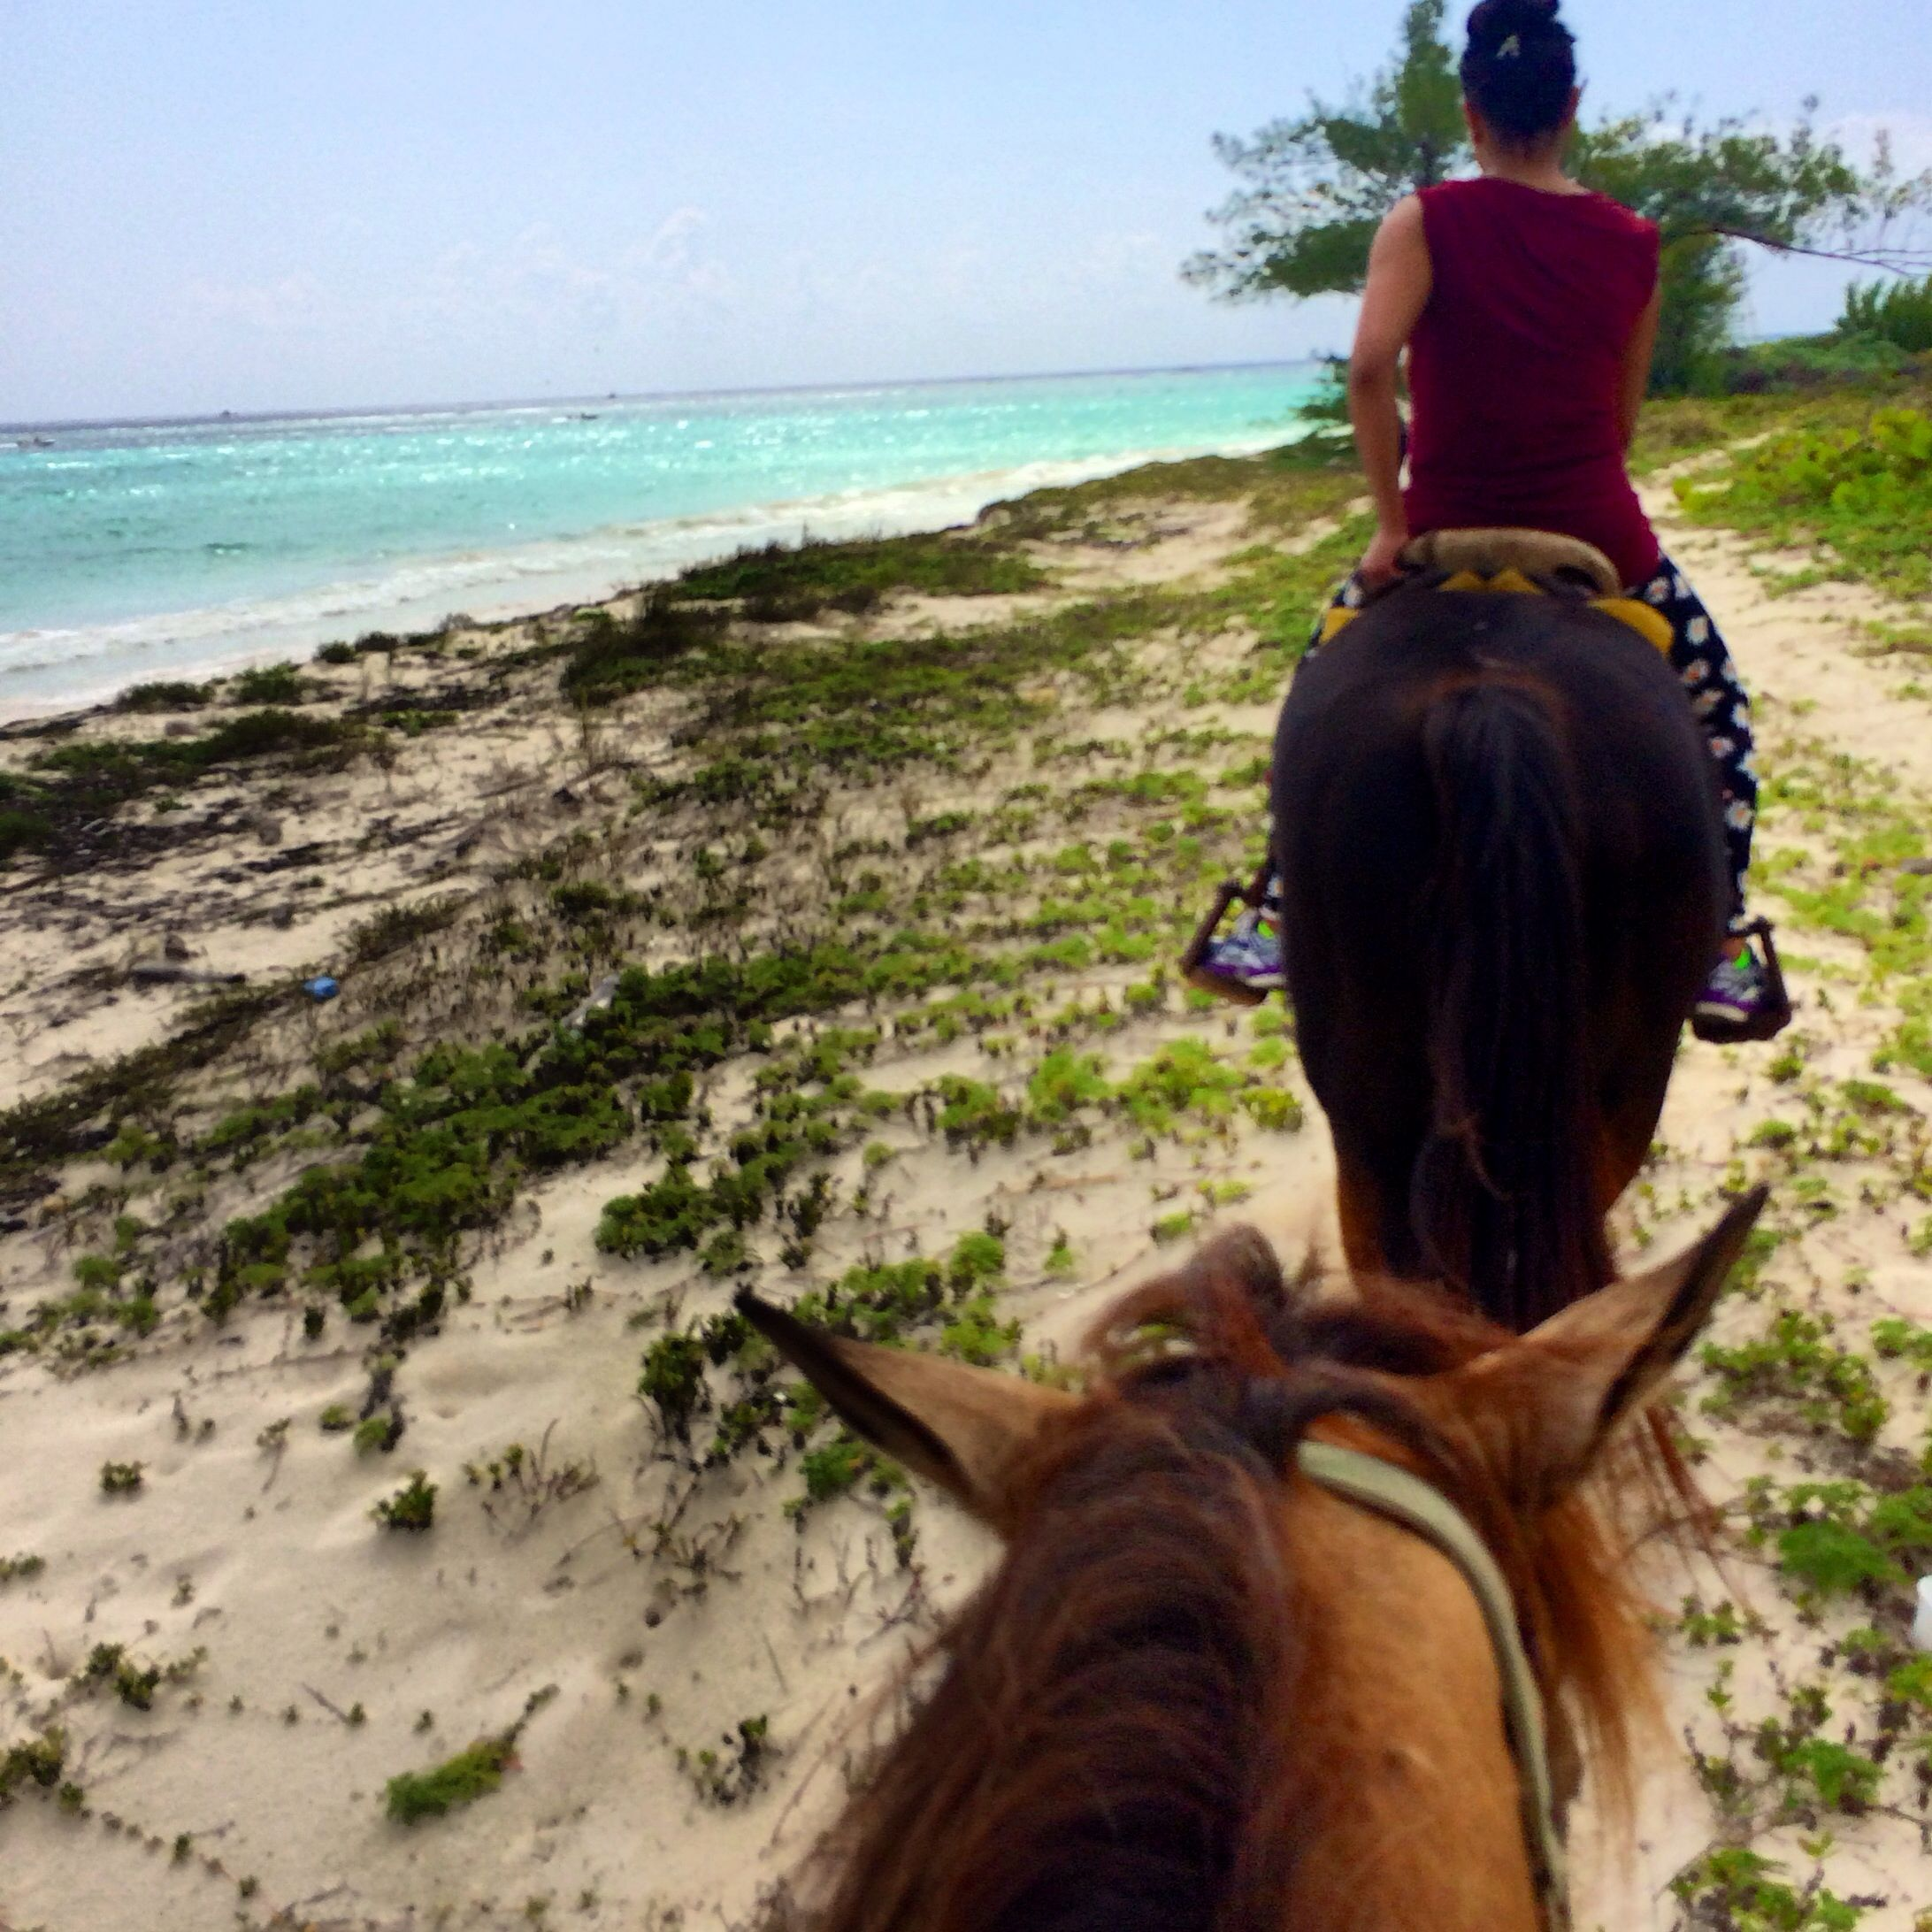 Horse back riding on a private beach in Playa Del Carmen